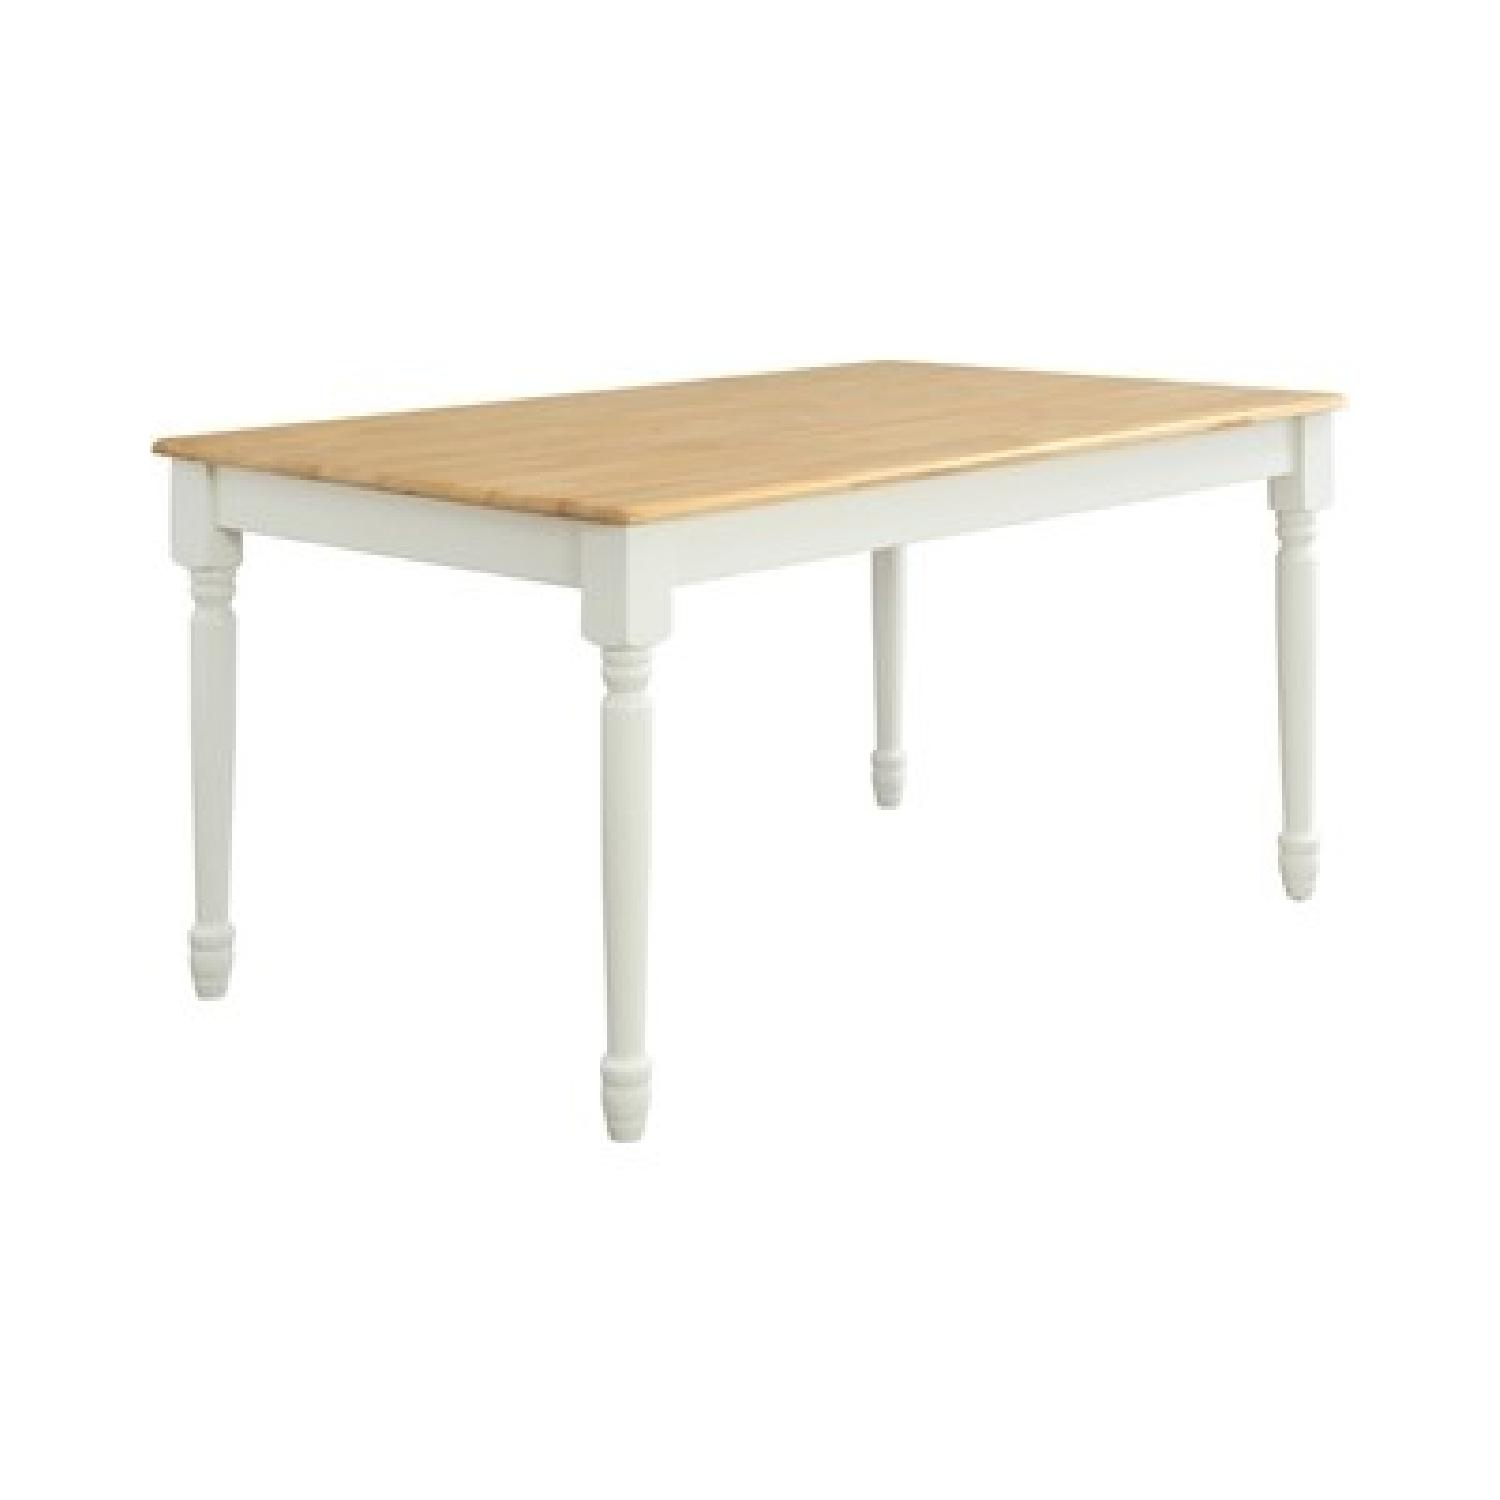 Better Homes & Gardens Dining Table w/ 1 Bench & 3 Chairs - image-5